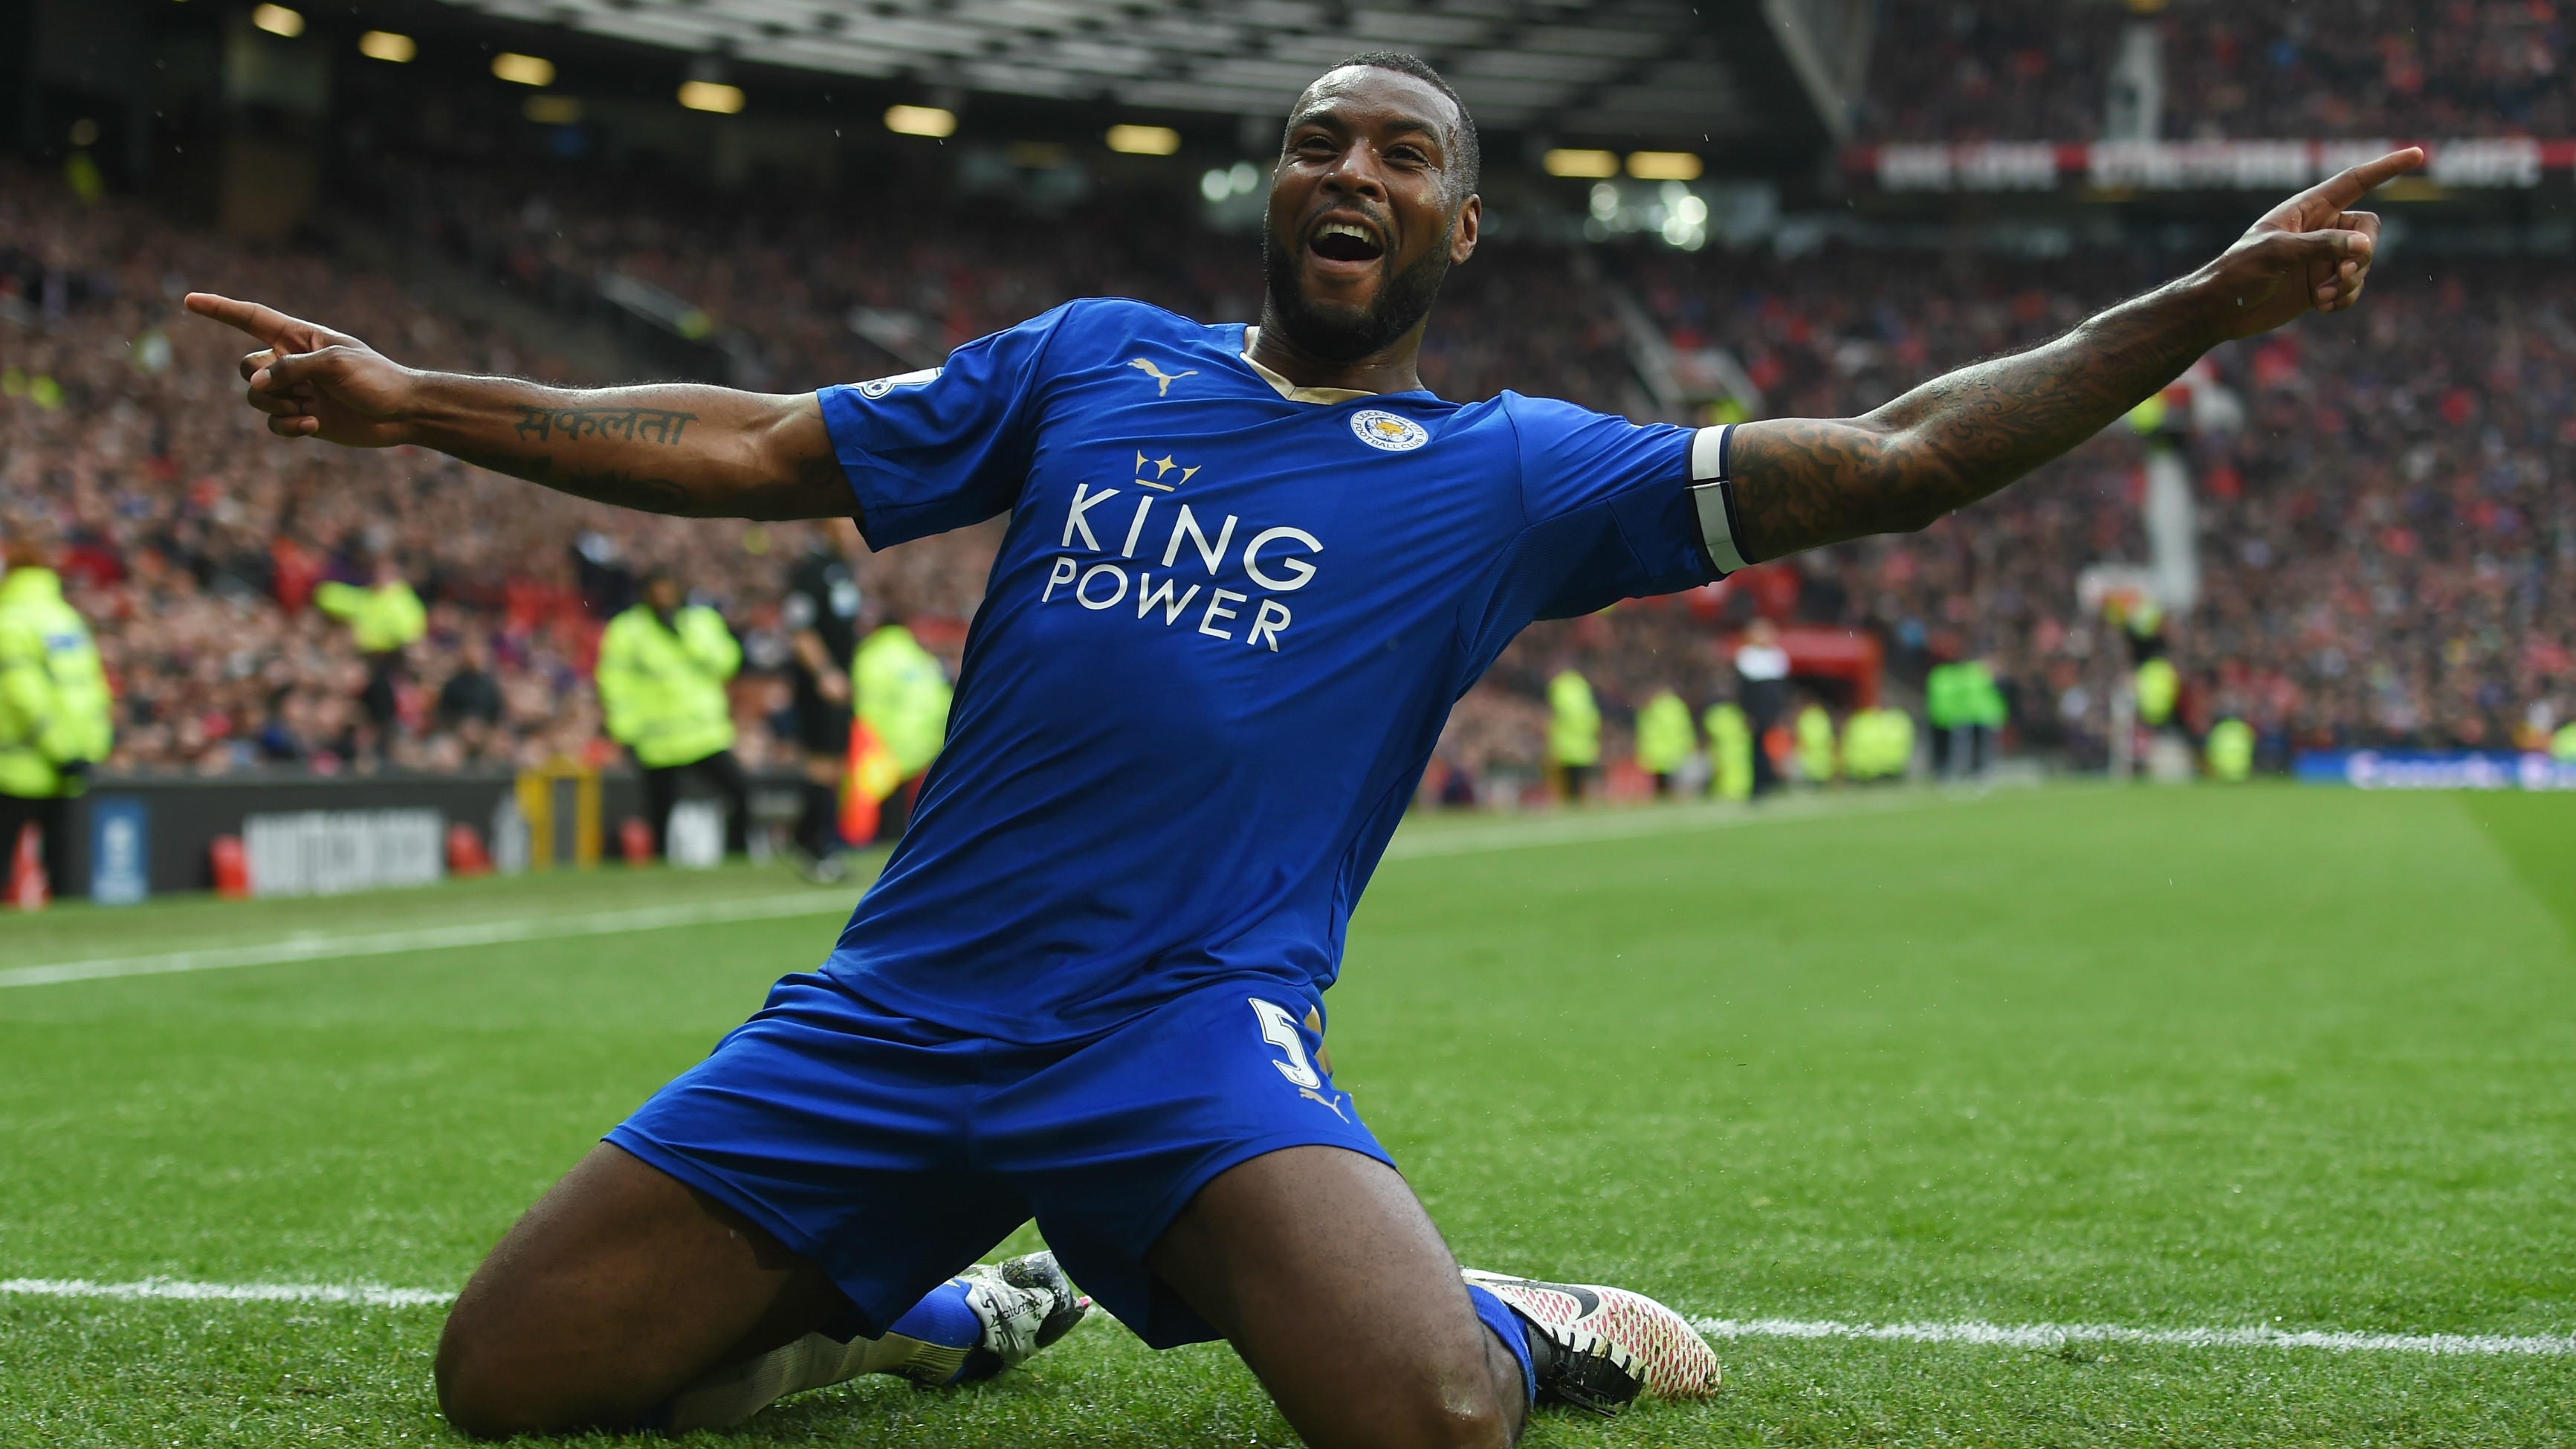 Leicester skipper Wes Morgan wants to buy everyone a drink | The Week UK